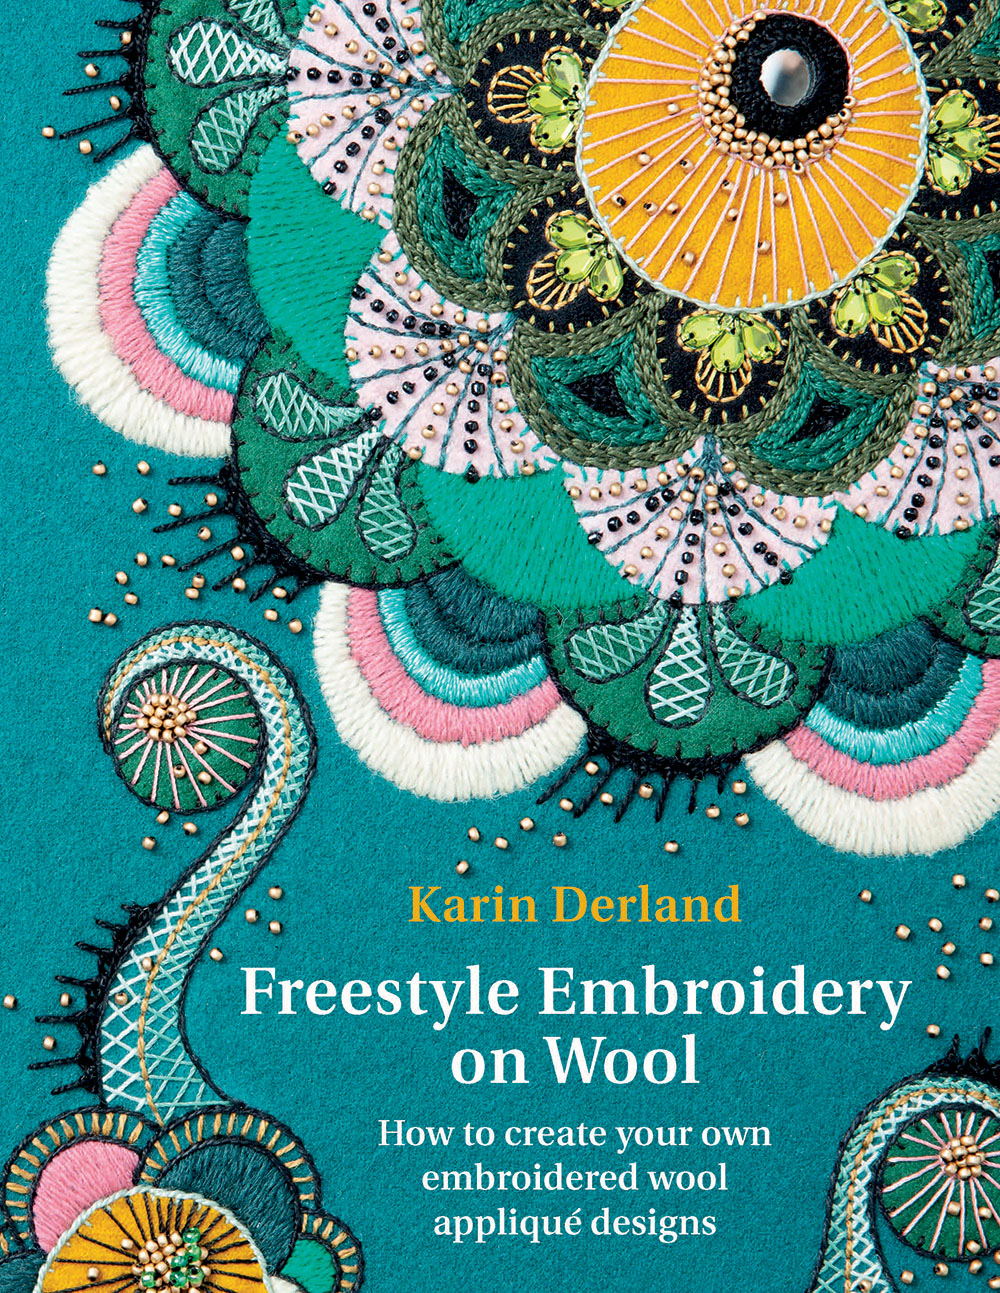 Freestyle Embroidery on Wool book cover image